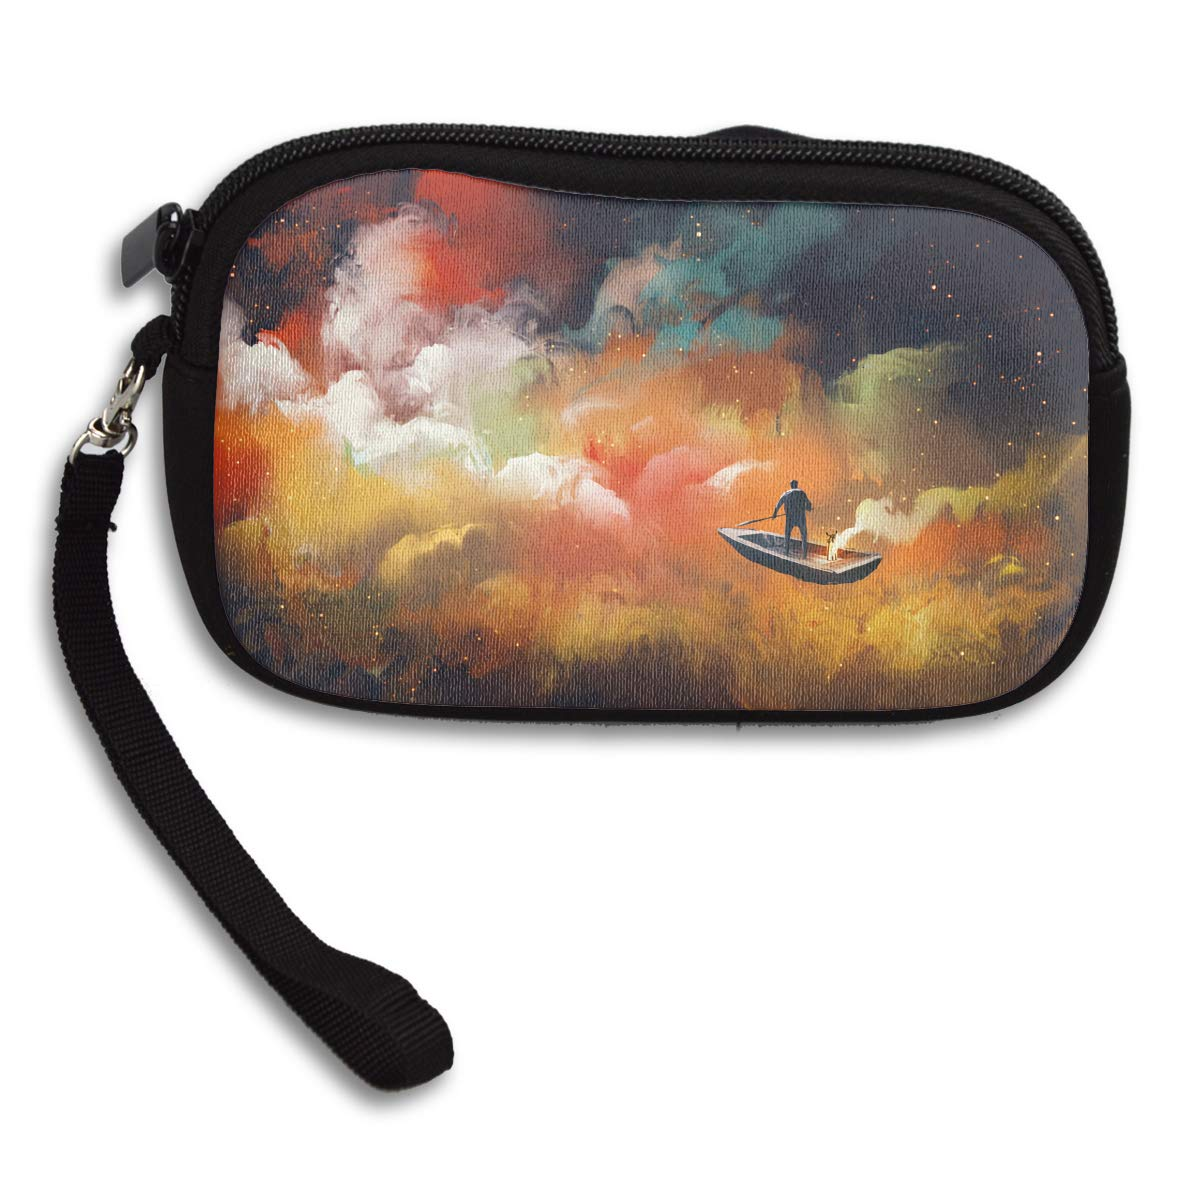 Man On A Boat In The Outer Space With Colorful Cloud Deluxe Printing Small Purse Portable Receiving Bag